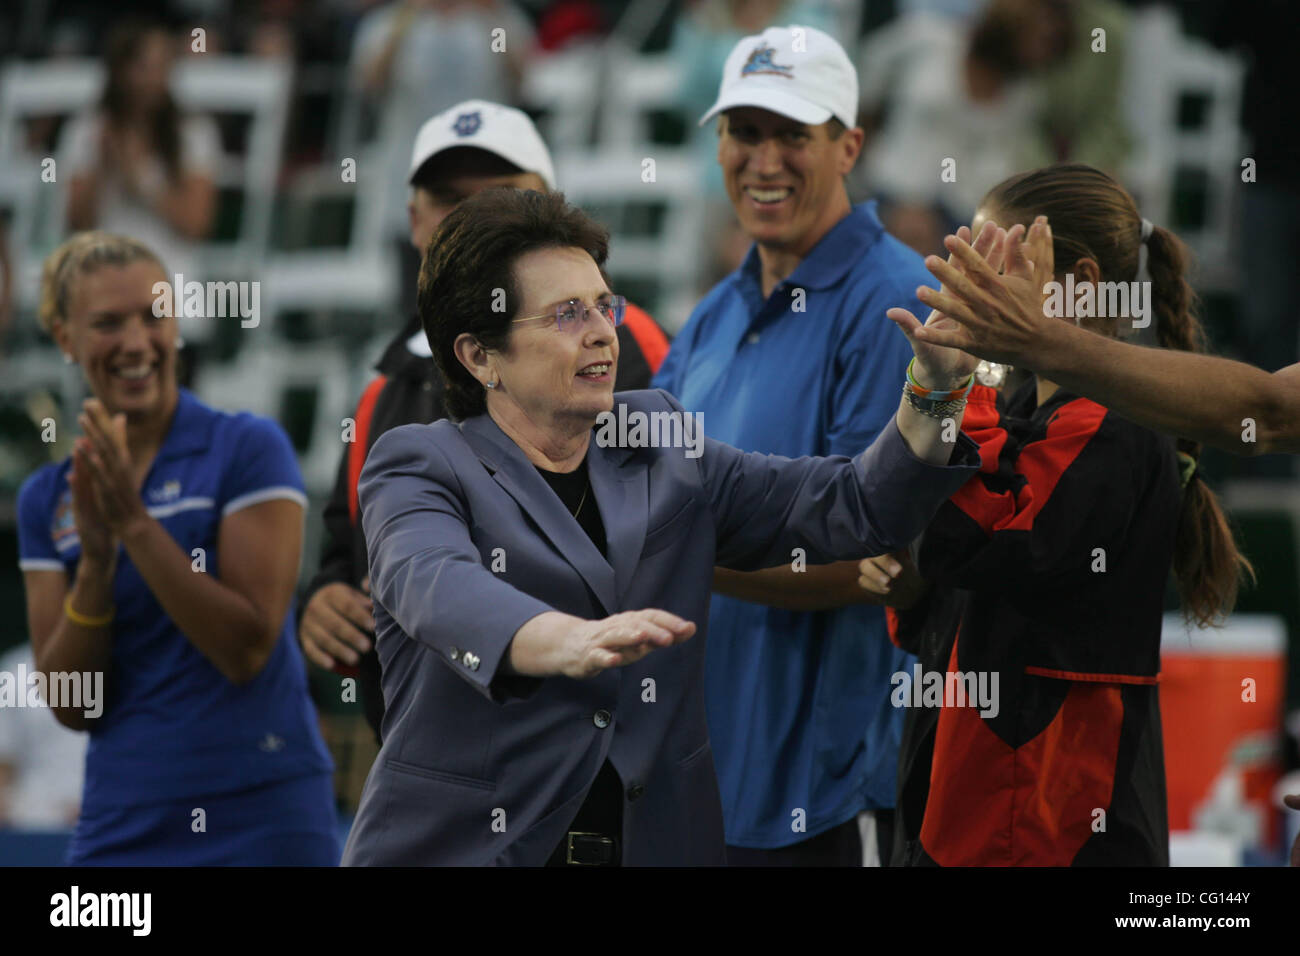 Jul 23, 2007 - Newport Beach, CA, USA - As one of the 20th century's most respected women, BILLIE JEAN KING - Stock Image